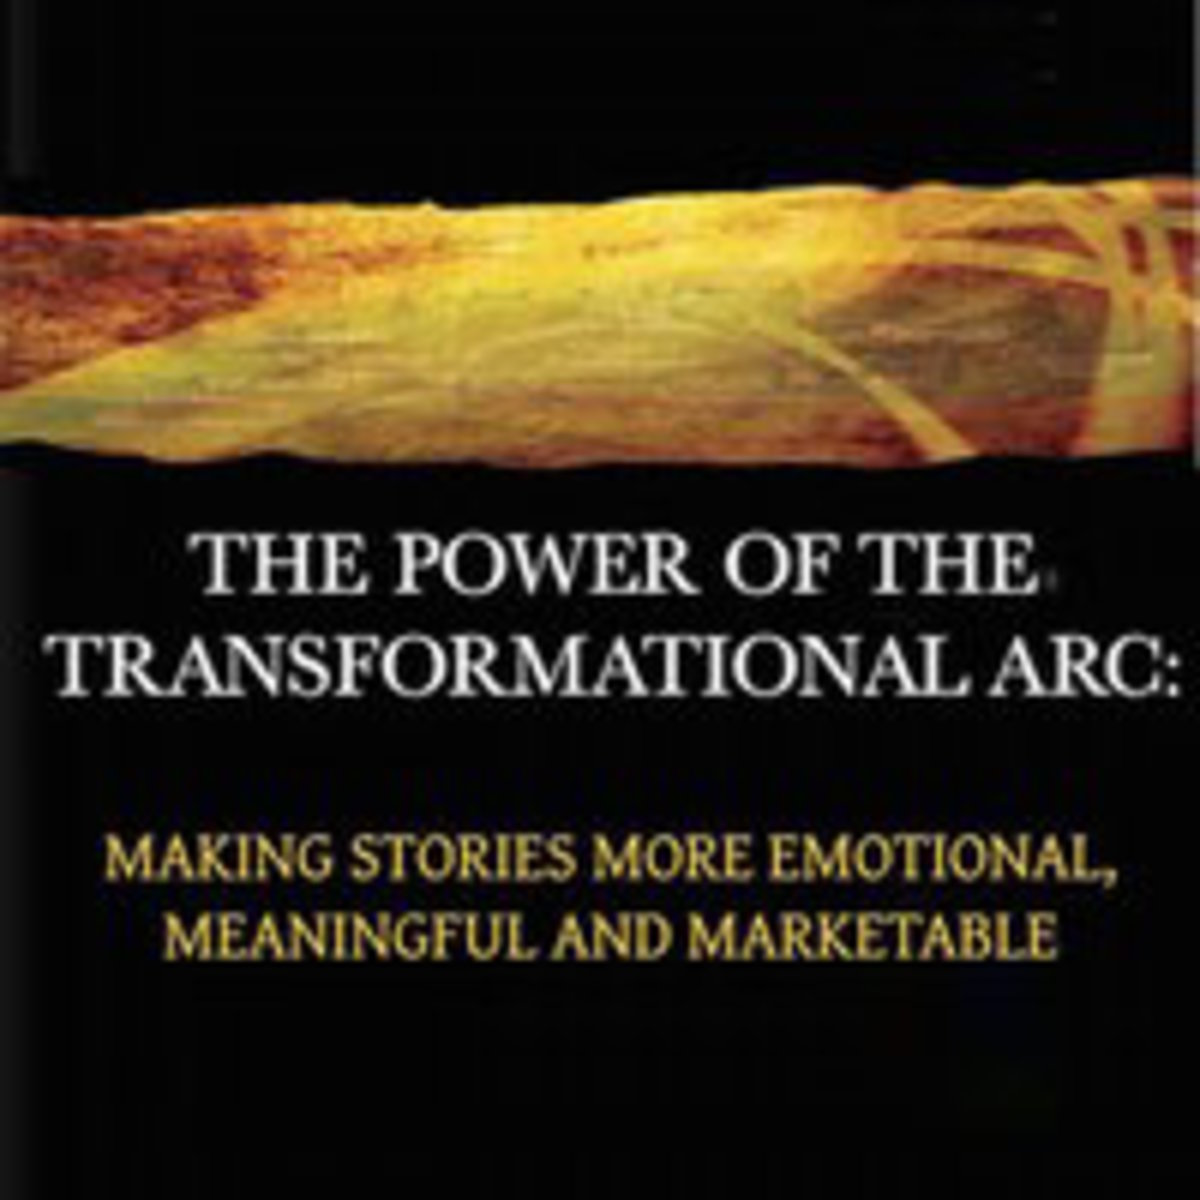 The Power of the Transformational Arc: Making Stories More Emotional, Meaningful and Marketable